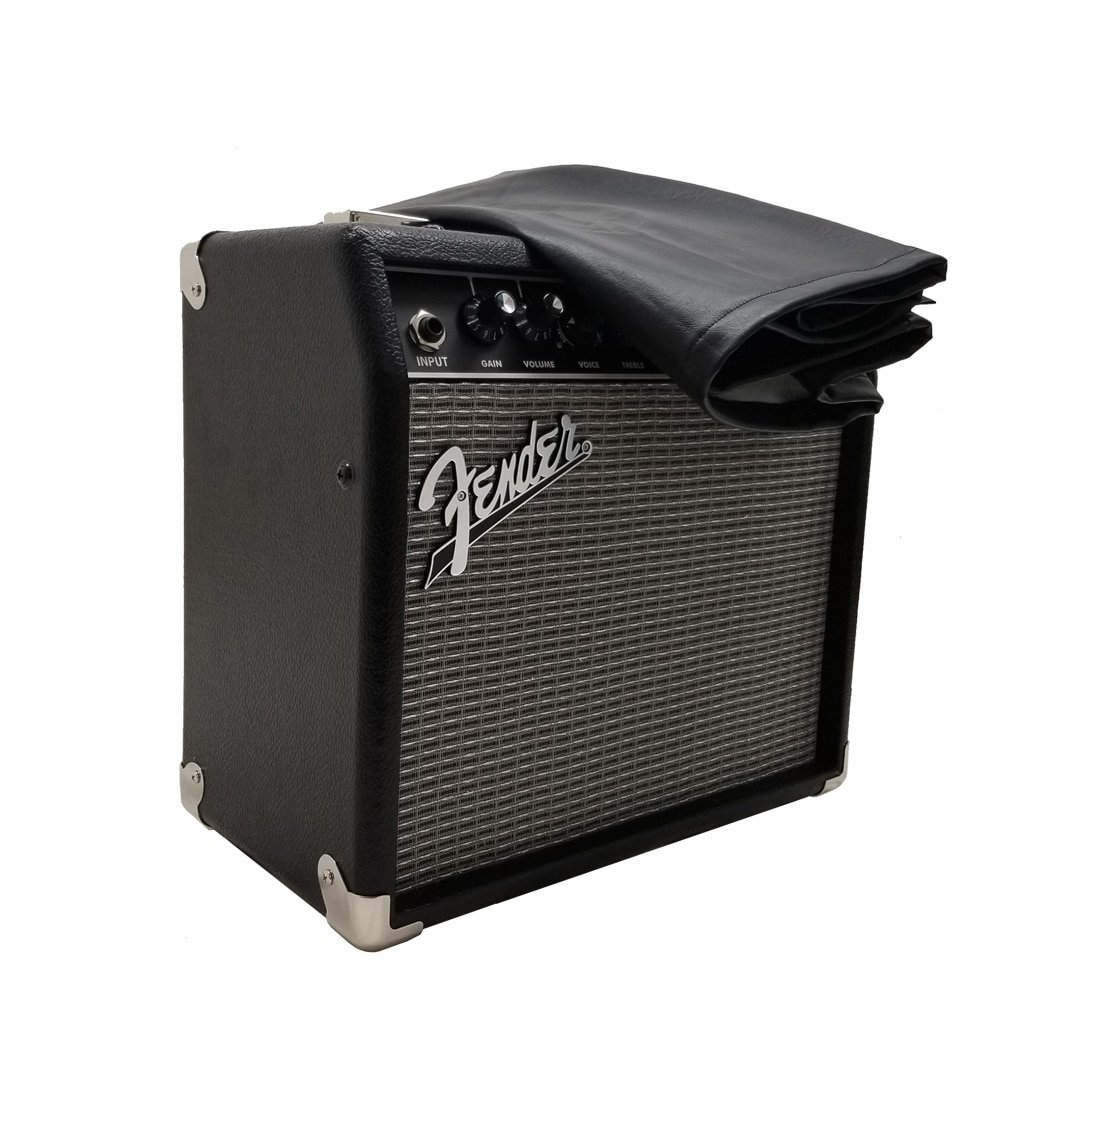 Fender Rumble 40 Guitar Amplifier Dust Covers by DCFY | Prem. Synth. Leather - Padded